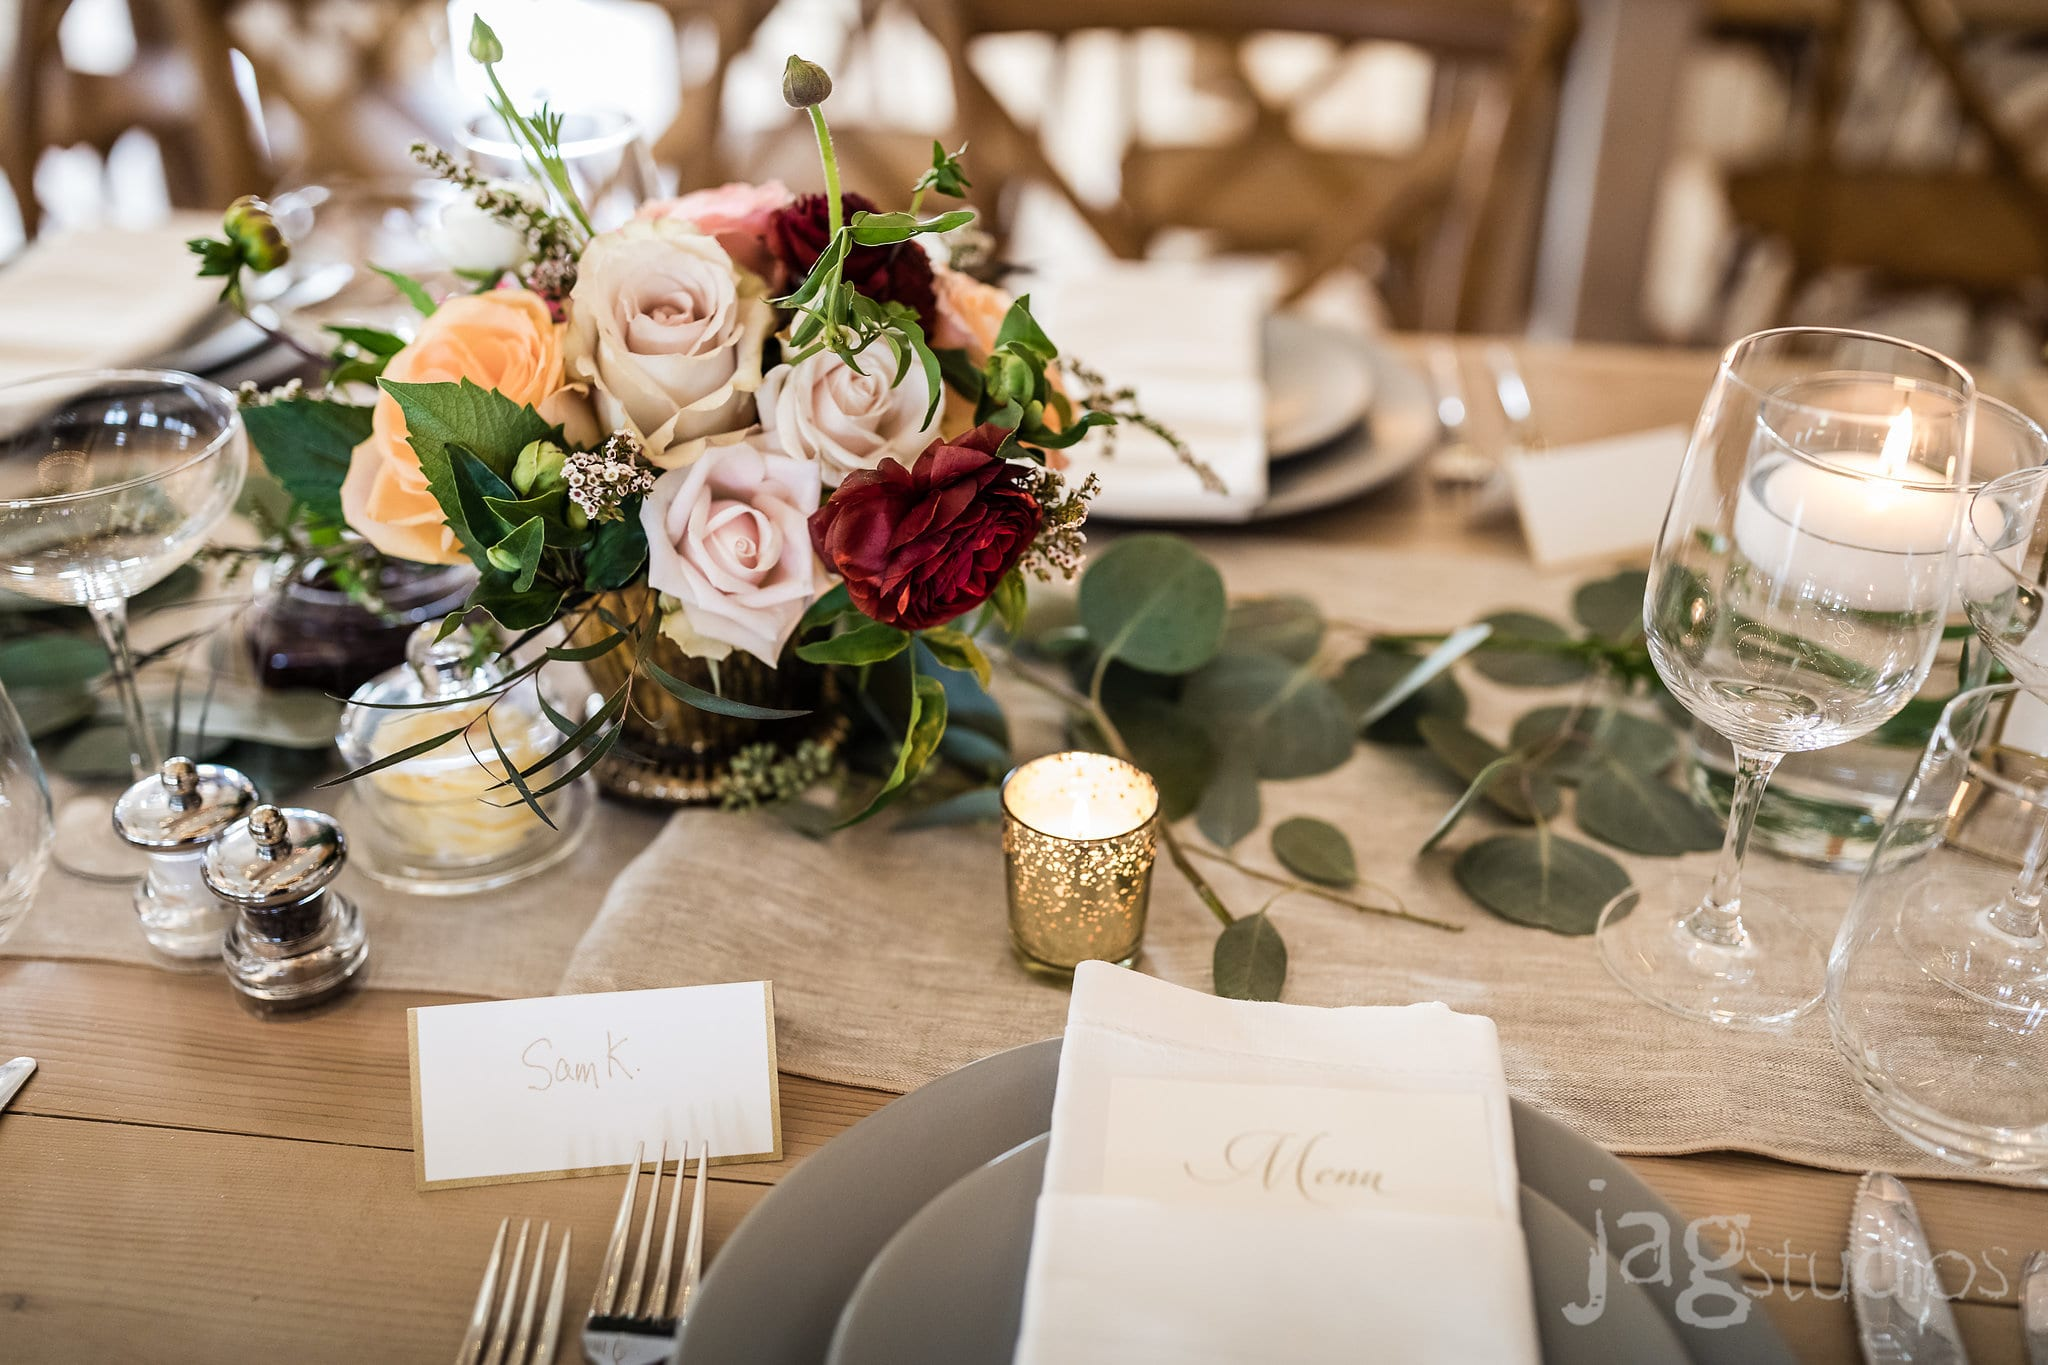 Old World Luxury Wedding lush floral farm to table Jaclyn Watson Events